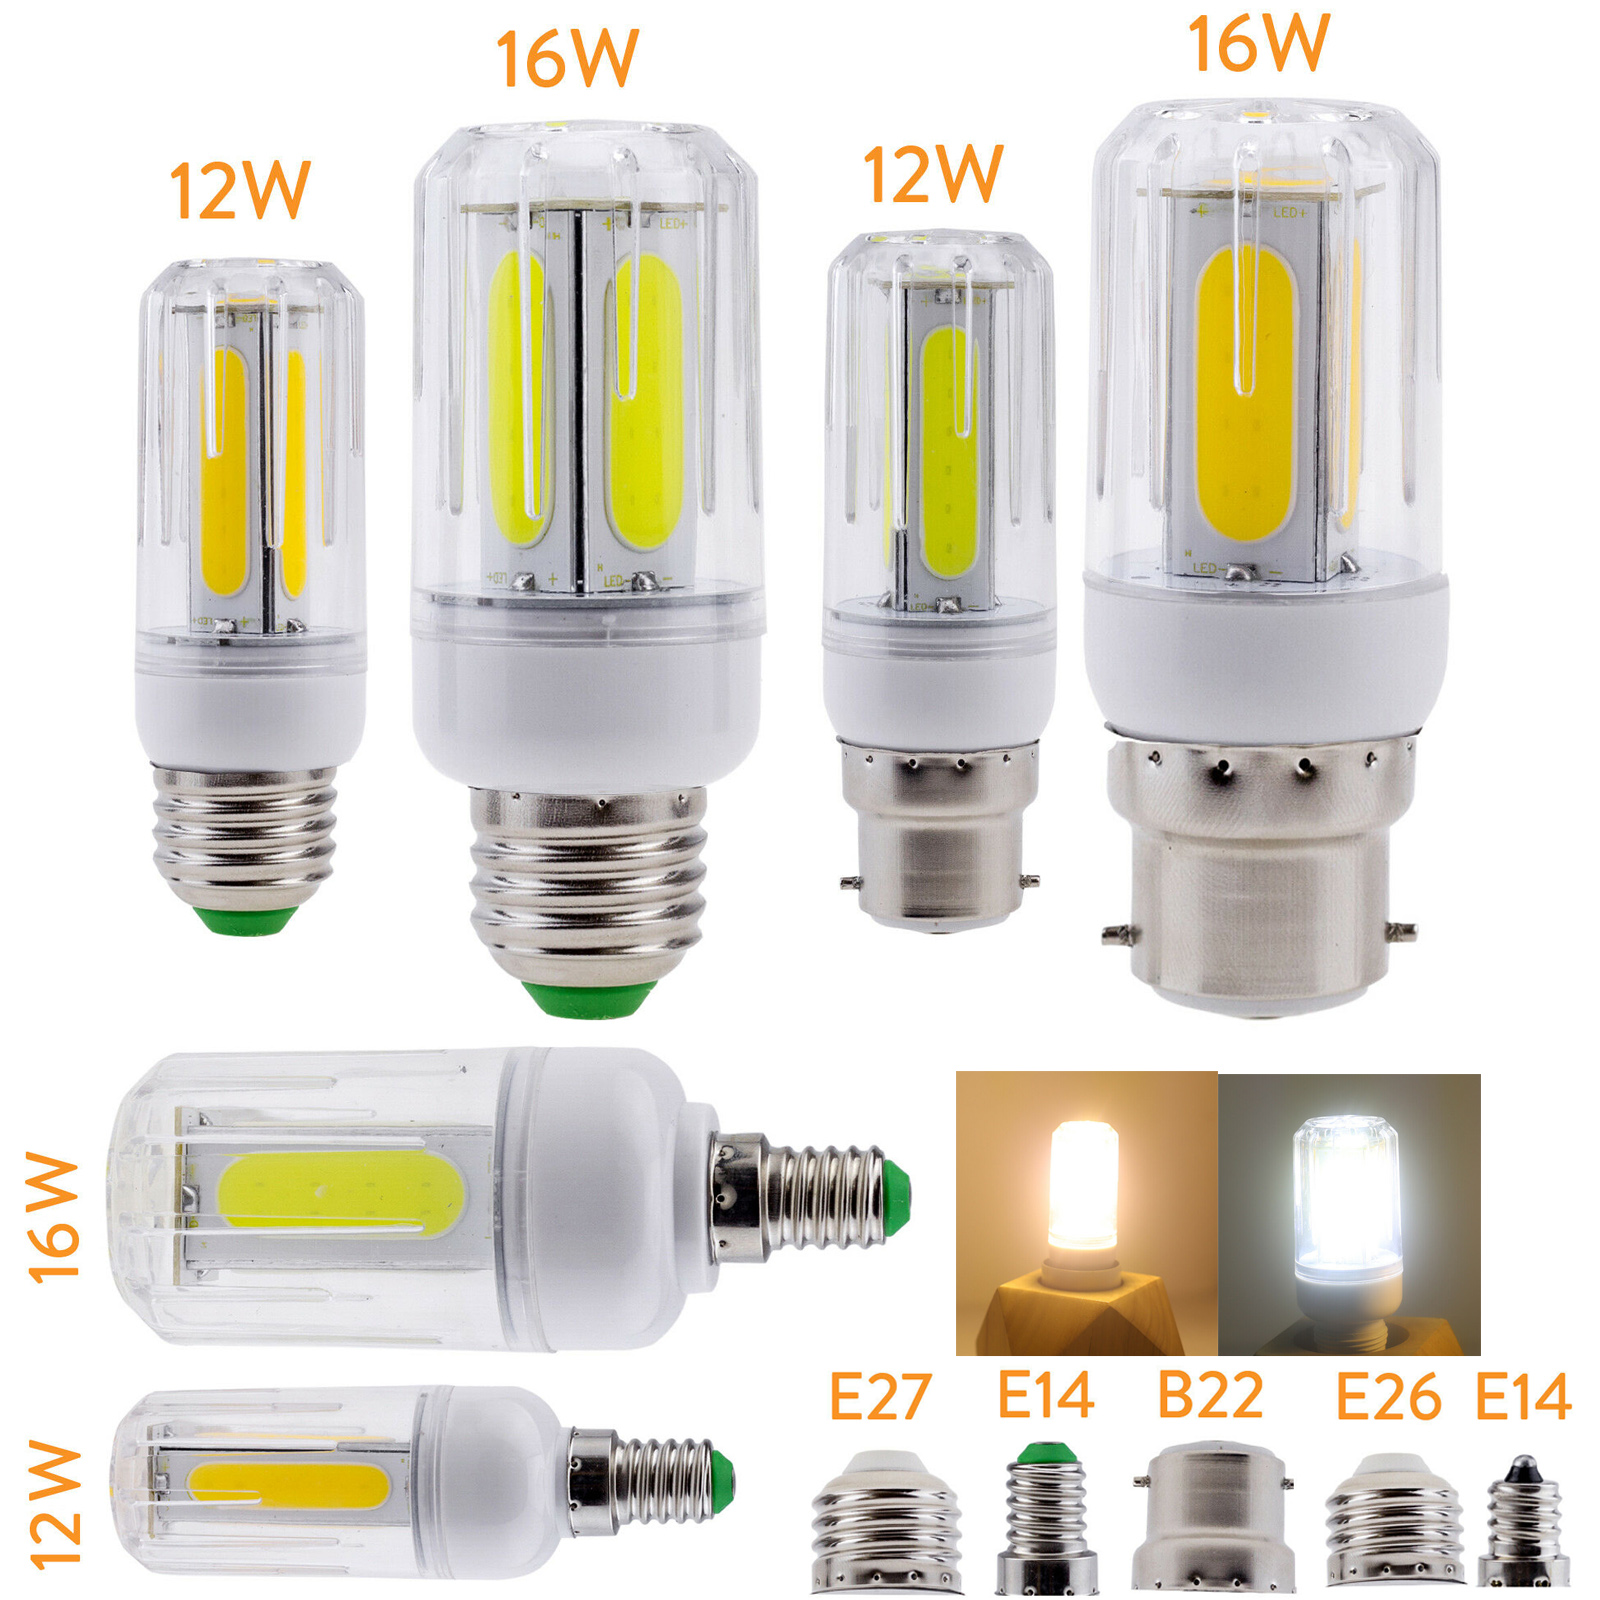 12W 16W LED COB Corn Light Bulbs Super Bright E26 E27 B22 E14 Screw / Bayonet Base Lamps AC 85-265V 110V 220V For Home Office